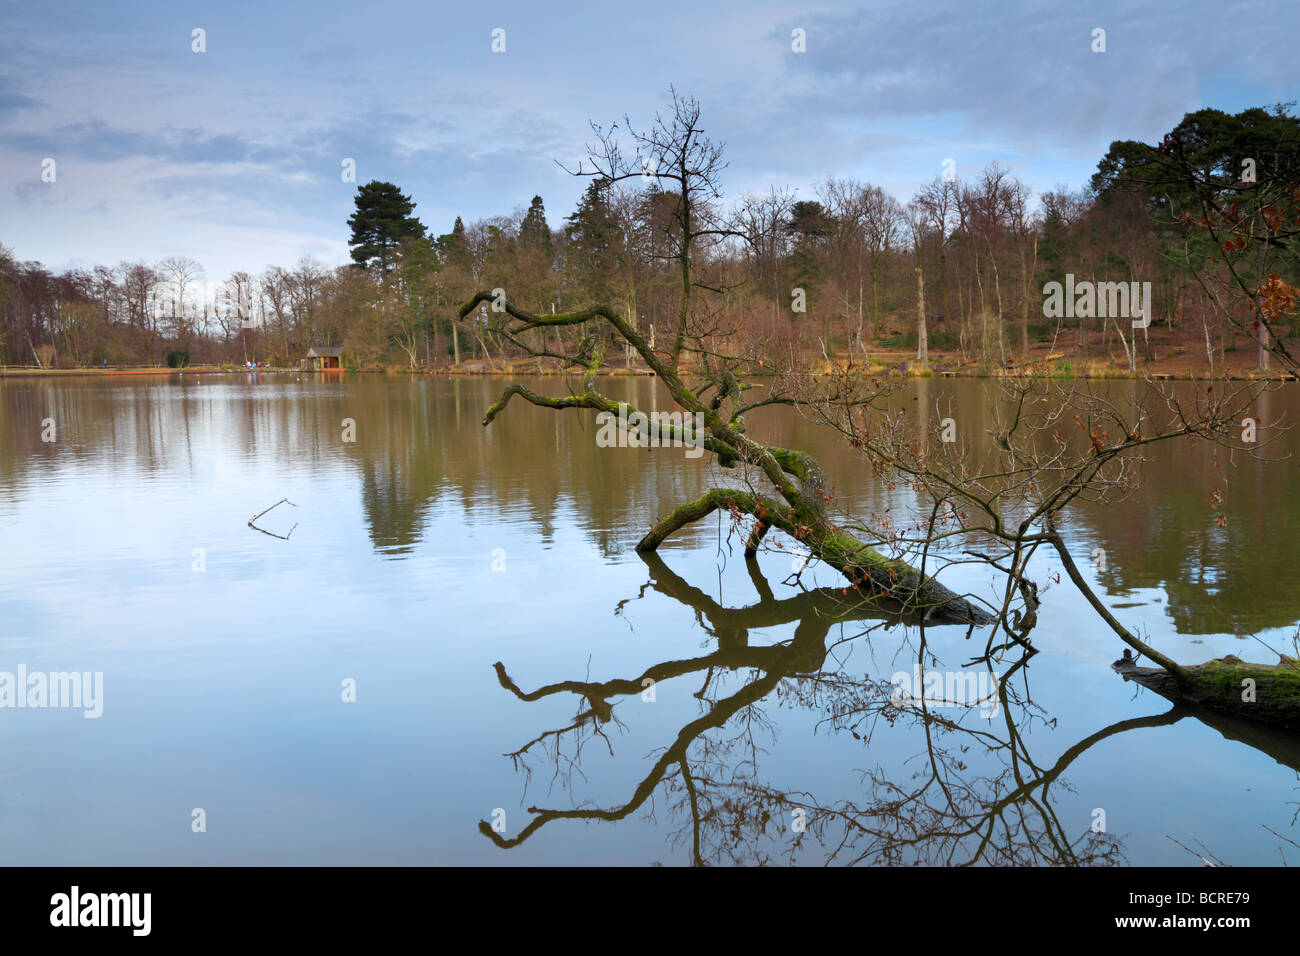 Douster pond, Bucham country park, Crawley, West Sussex - Stock Image